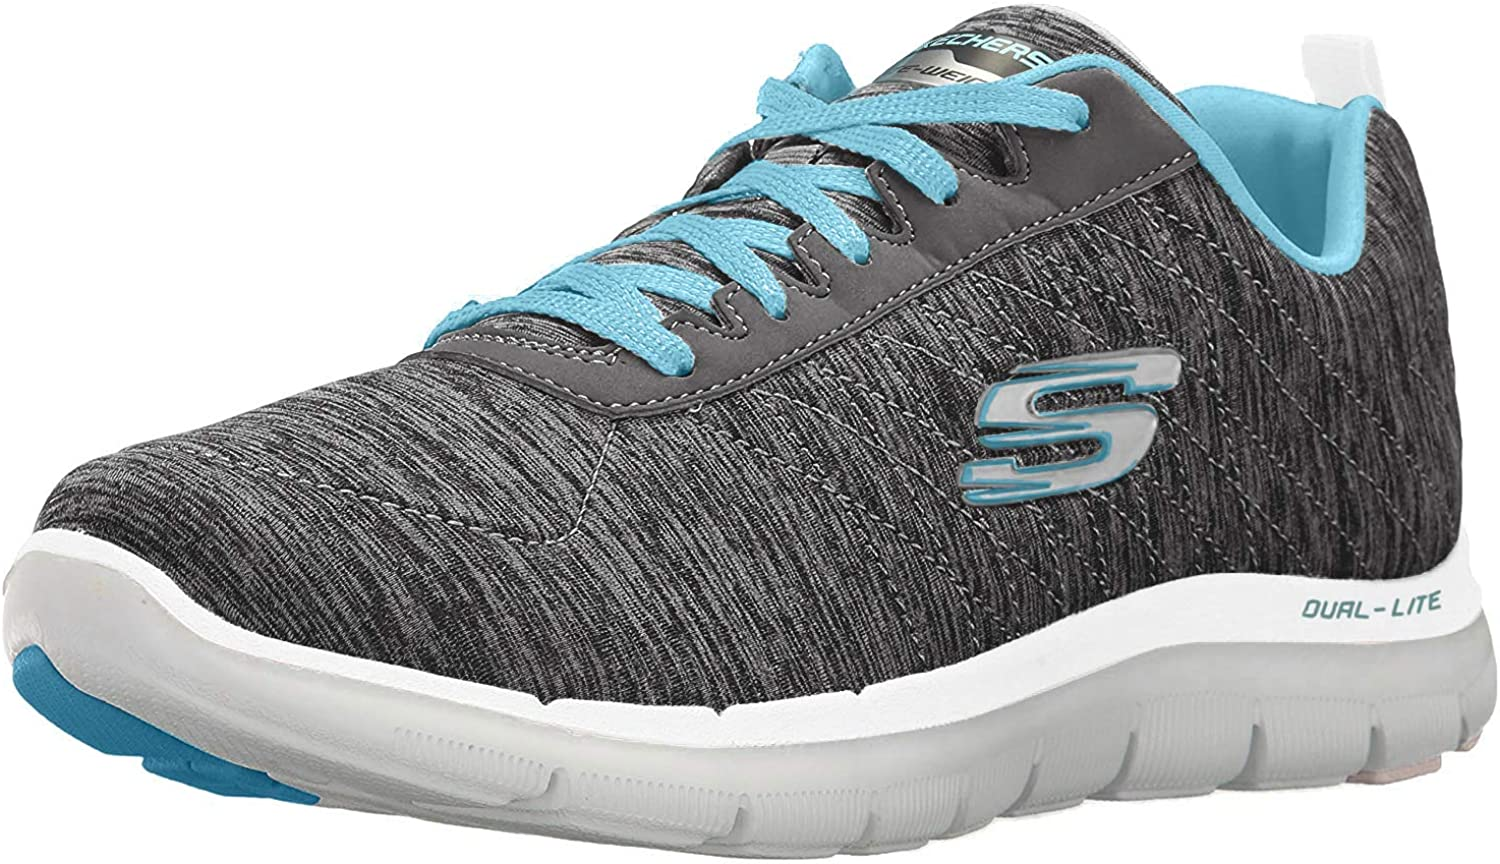 creer Corte obesidad  Skechers Sport Women's Flex Appeal 2.0 Fashion Sneaker: Amazon.ca: Shoes &  Handbags